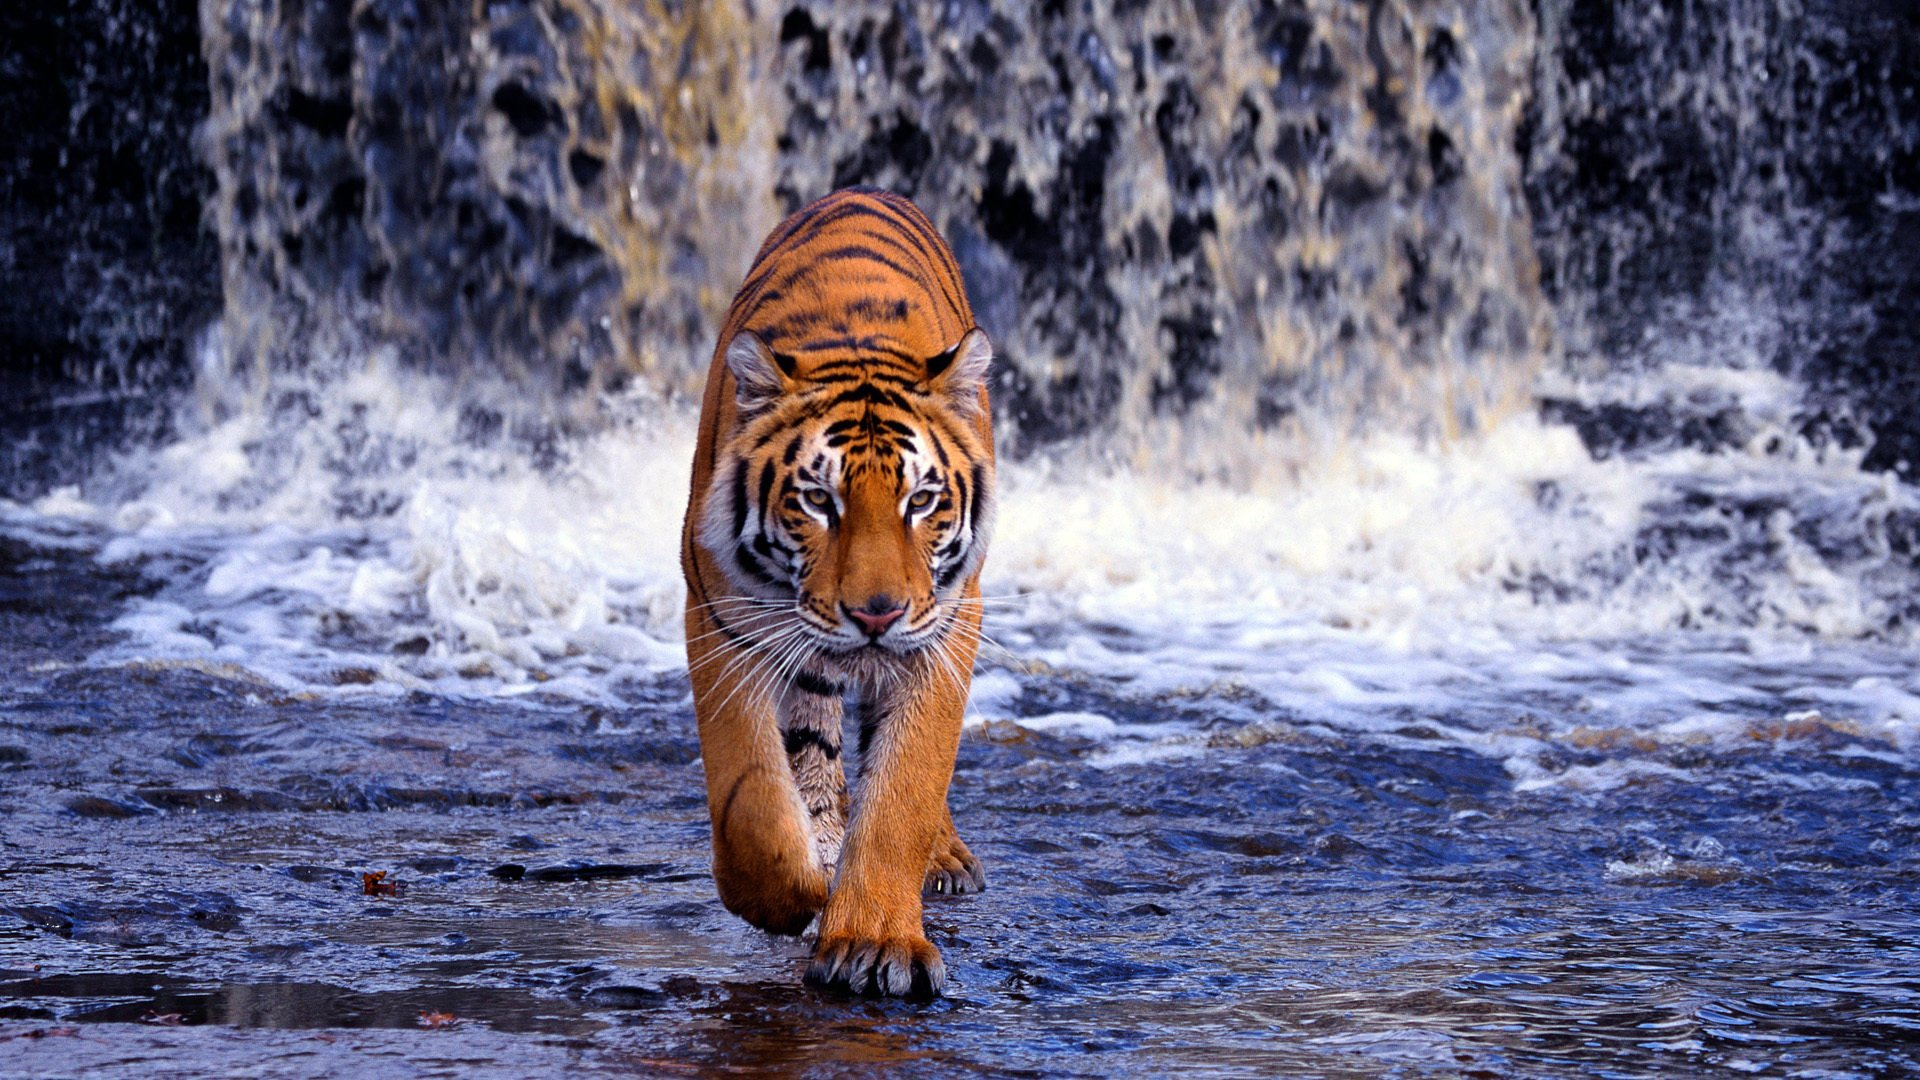 tiger hd wallpaper for desktop #3